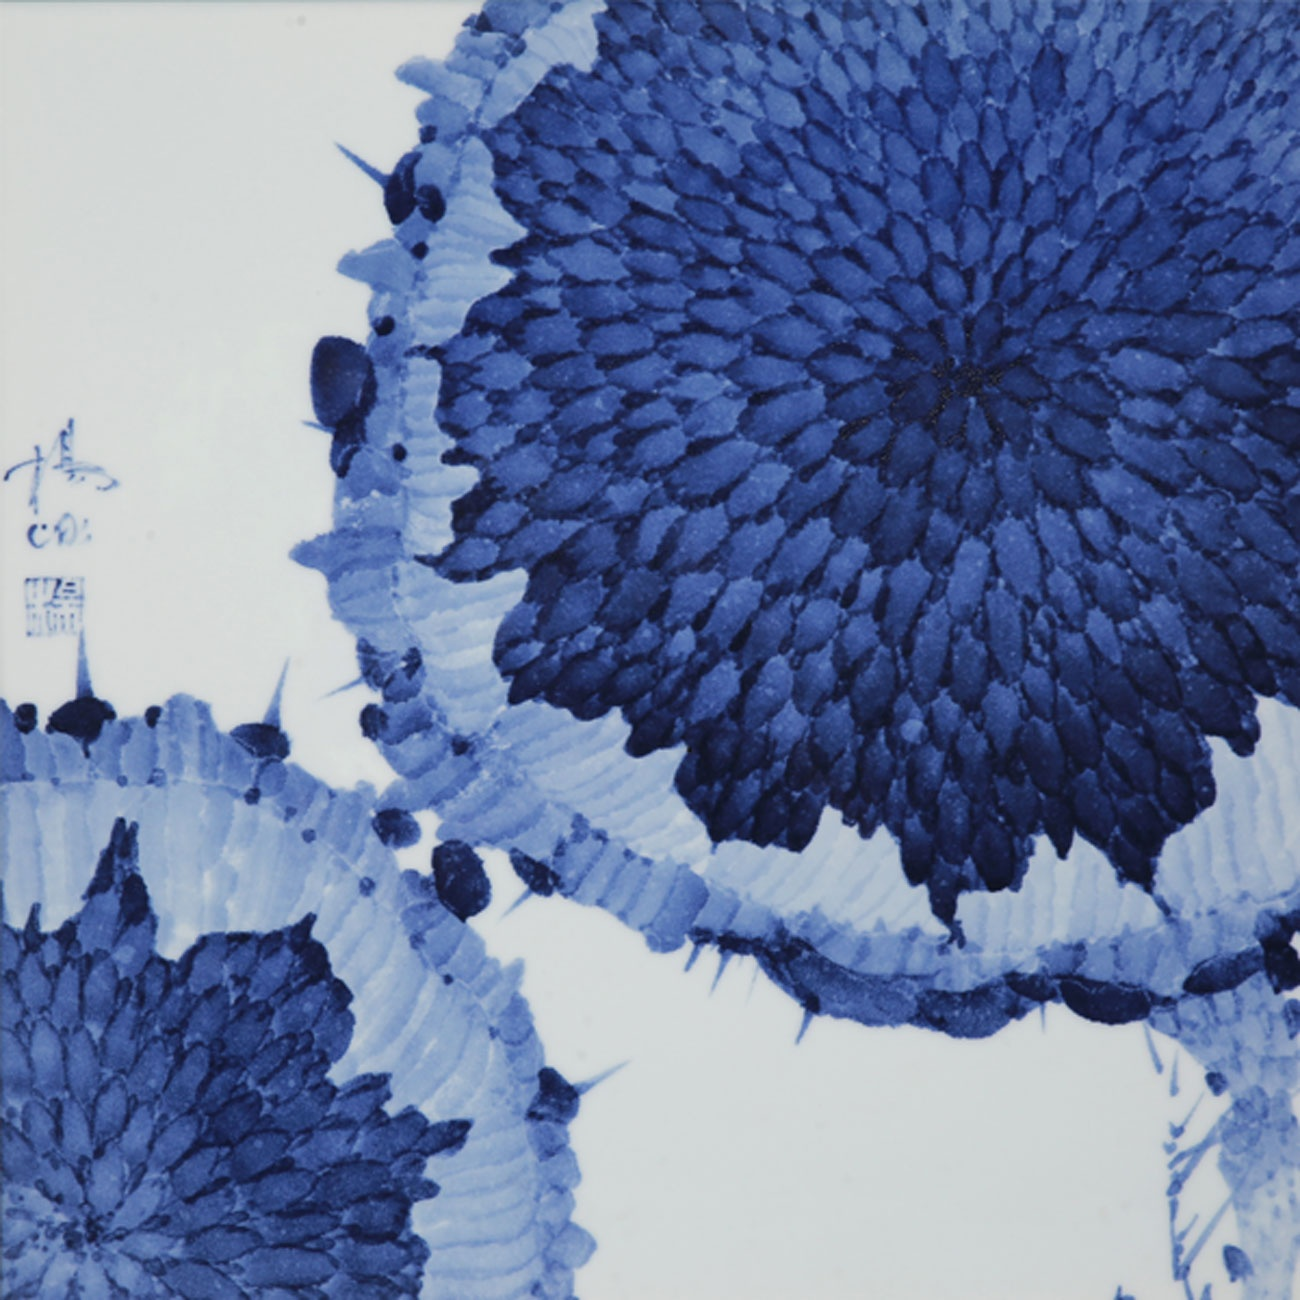 Yang Bing: blue and white porcelain blooming through the essence